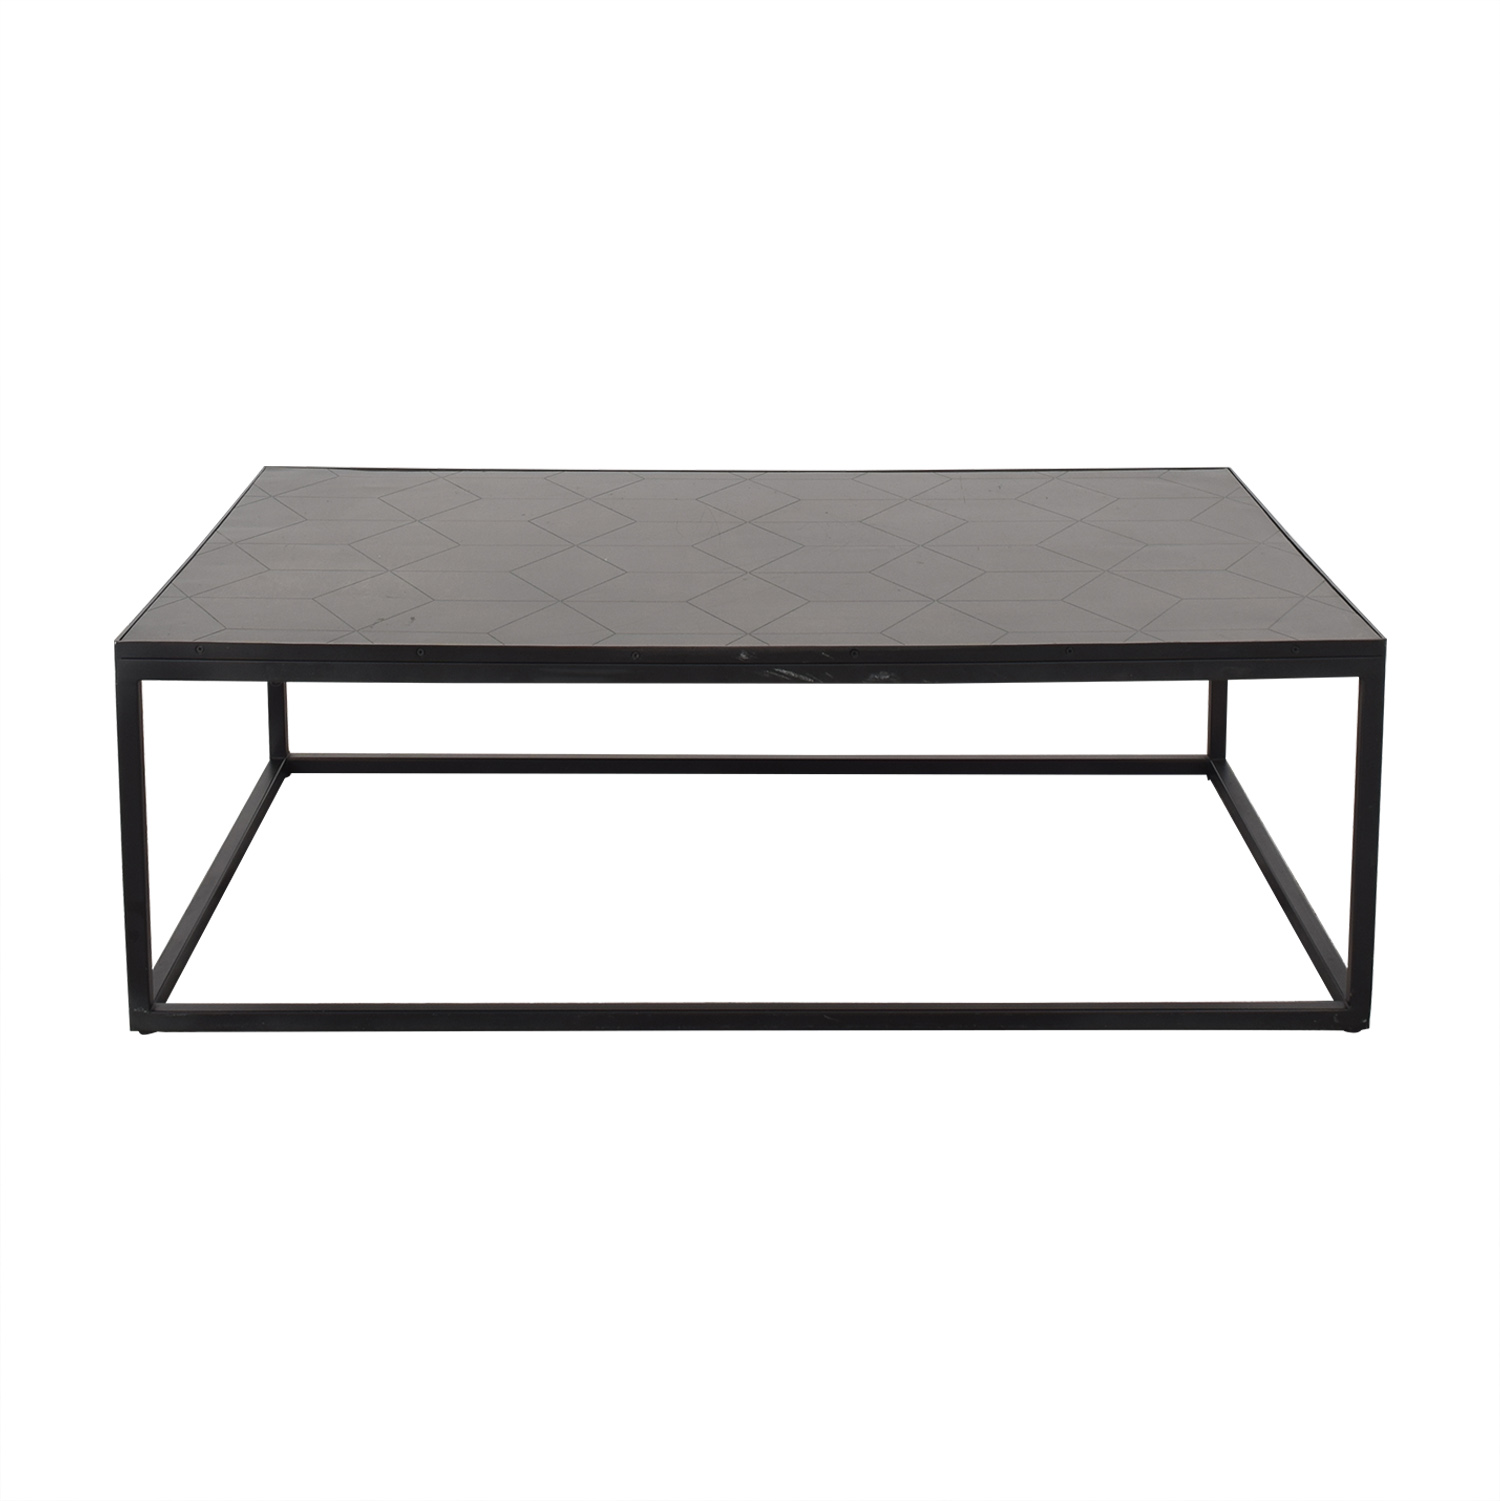 Restoration Hardware Mercer Rectangular Coffee Table sale